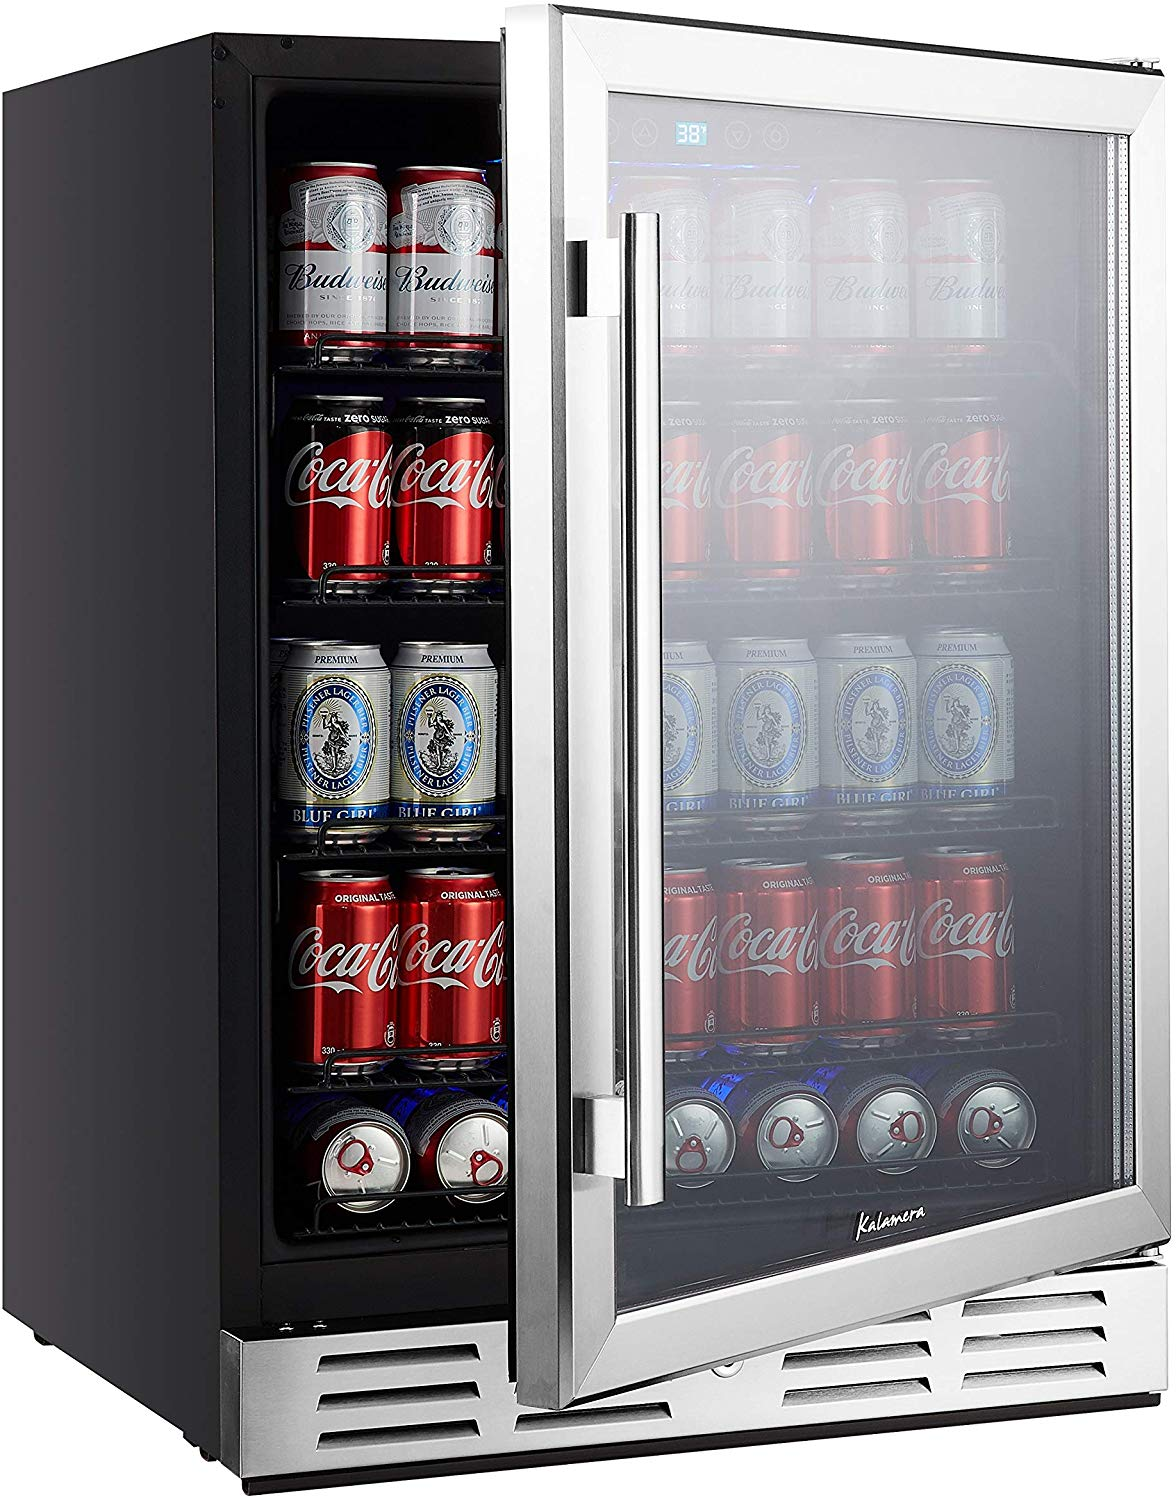 Kalamera Beverage Cooler and Fridge - Fit Perfectly into 24 inch Space Under Counter or Freestanding